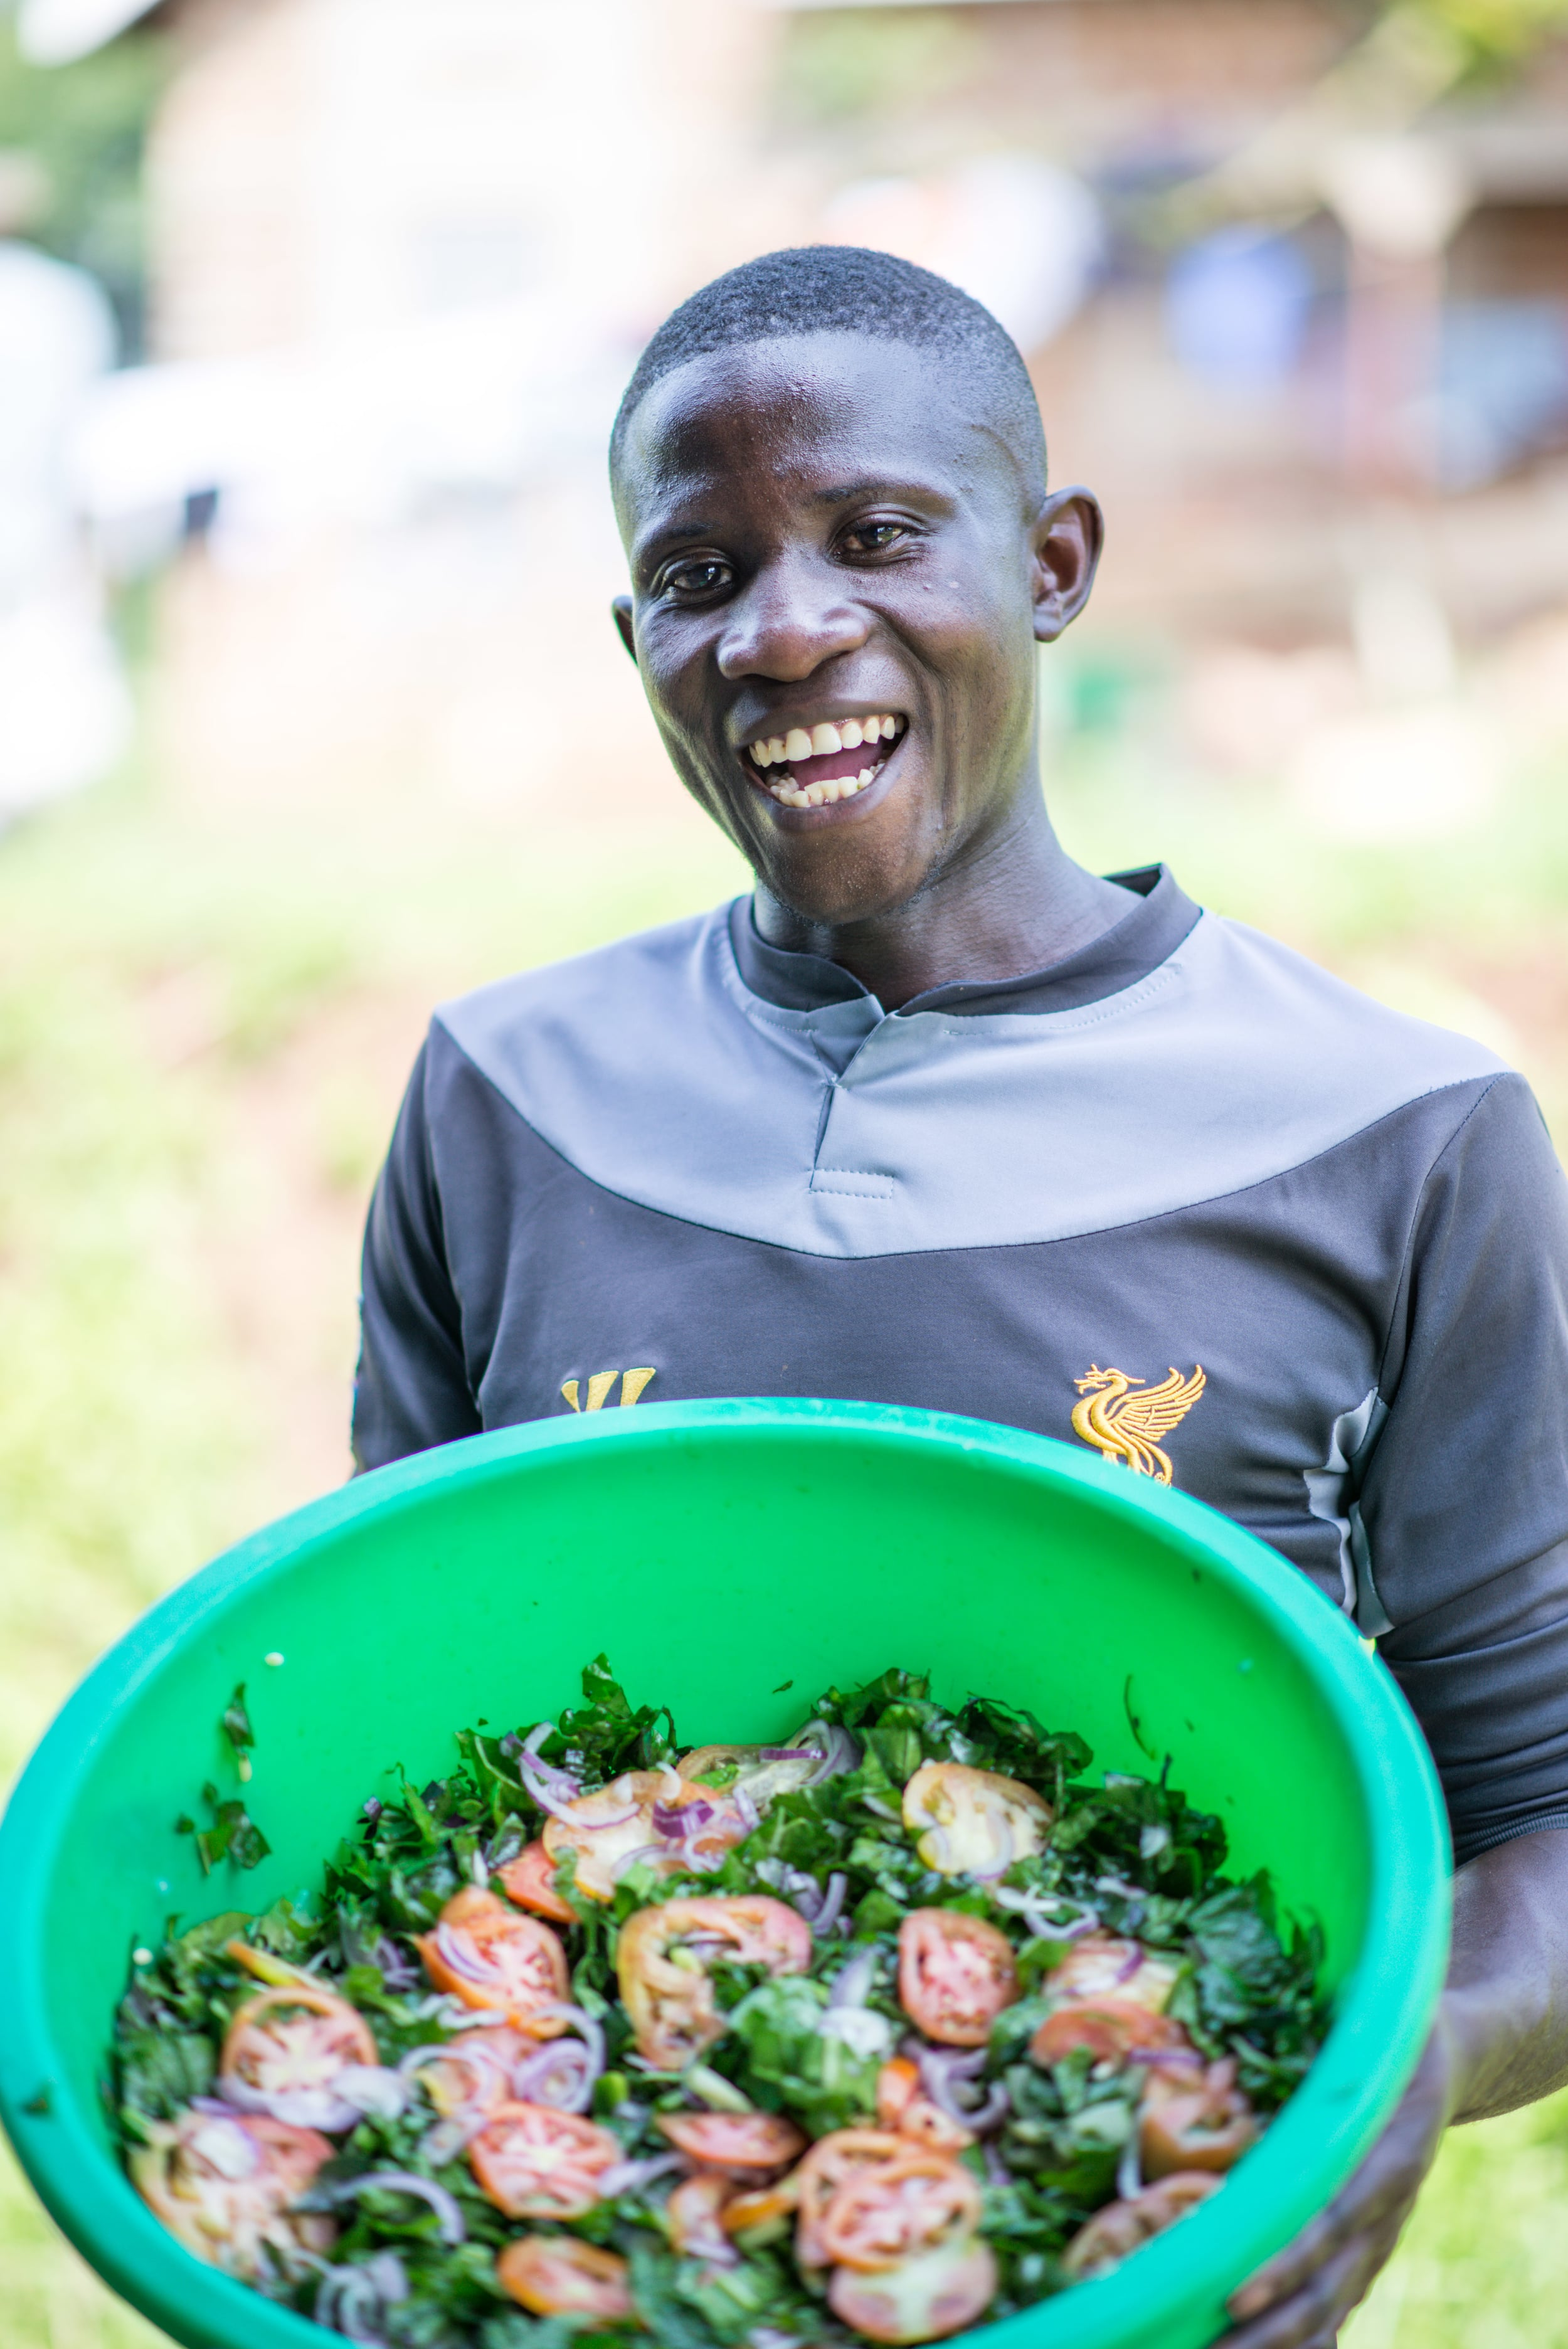 Edwin, a student at the Institute for G.O.D., proudly displays the final product. Delicious!